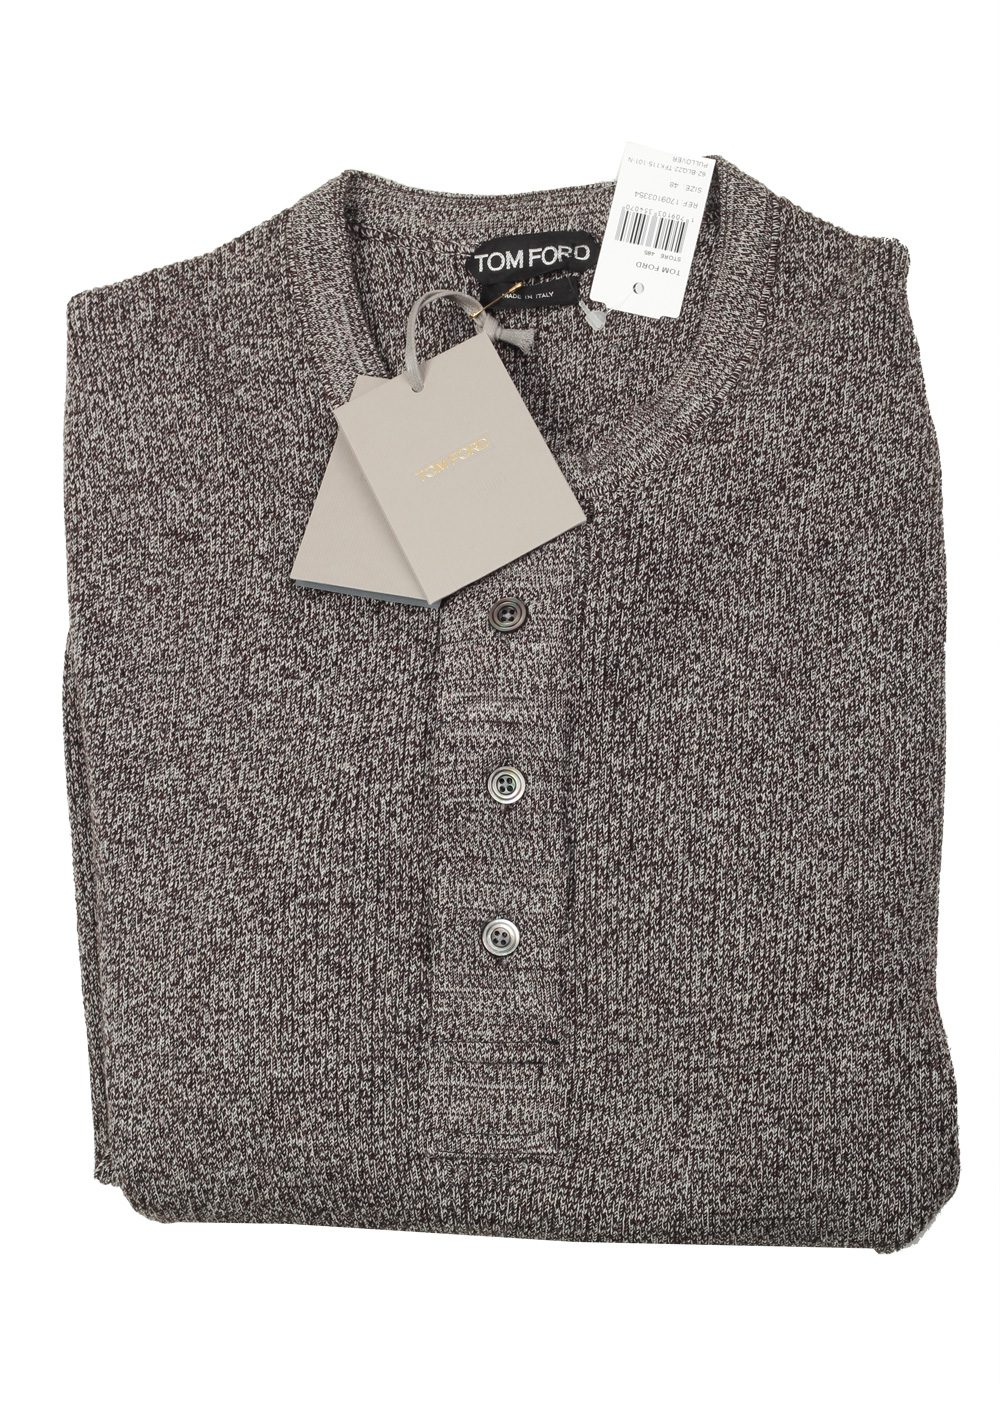 TOM FORD Gray Long Sleeve Henley Sweater Size 48 / 38R U.S. In Wool Silk   Costume Limité